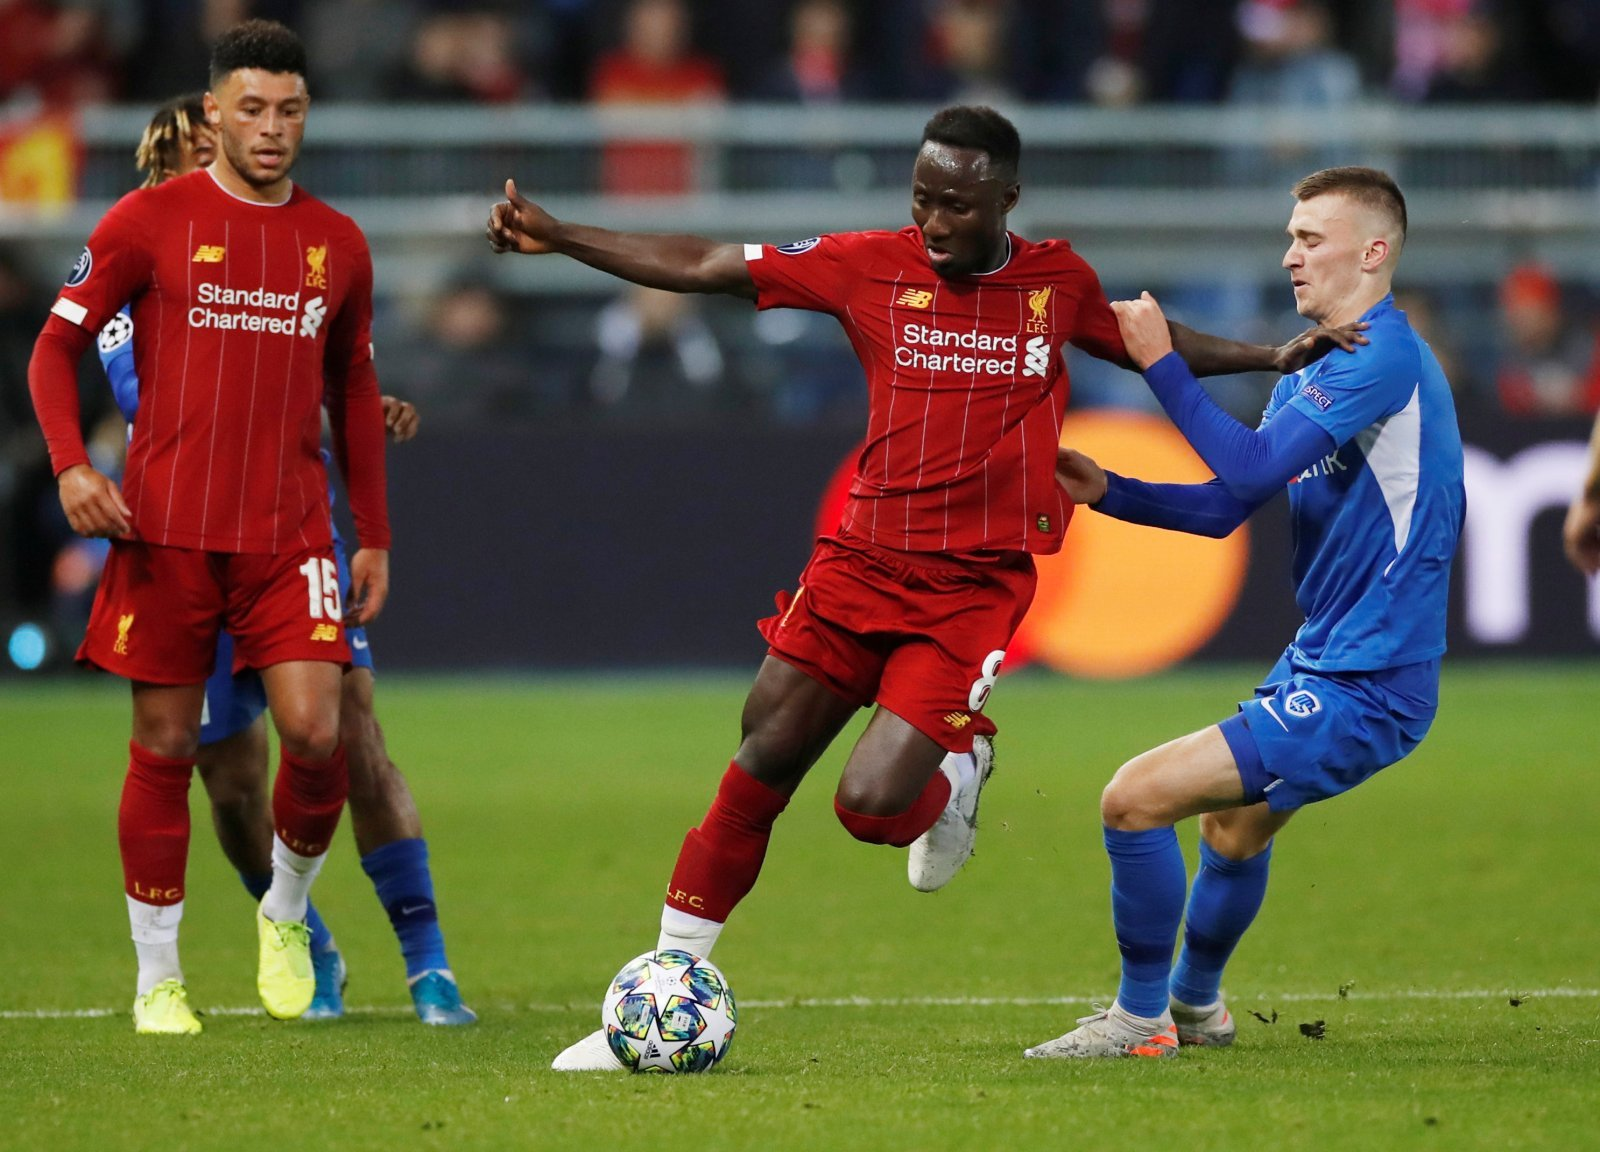 Liverpool: Fans flock to support Naby Keita as he aims to be Jurgen Klopp's favourite